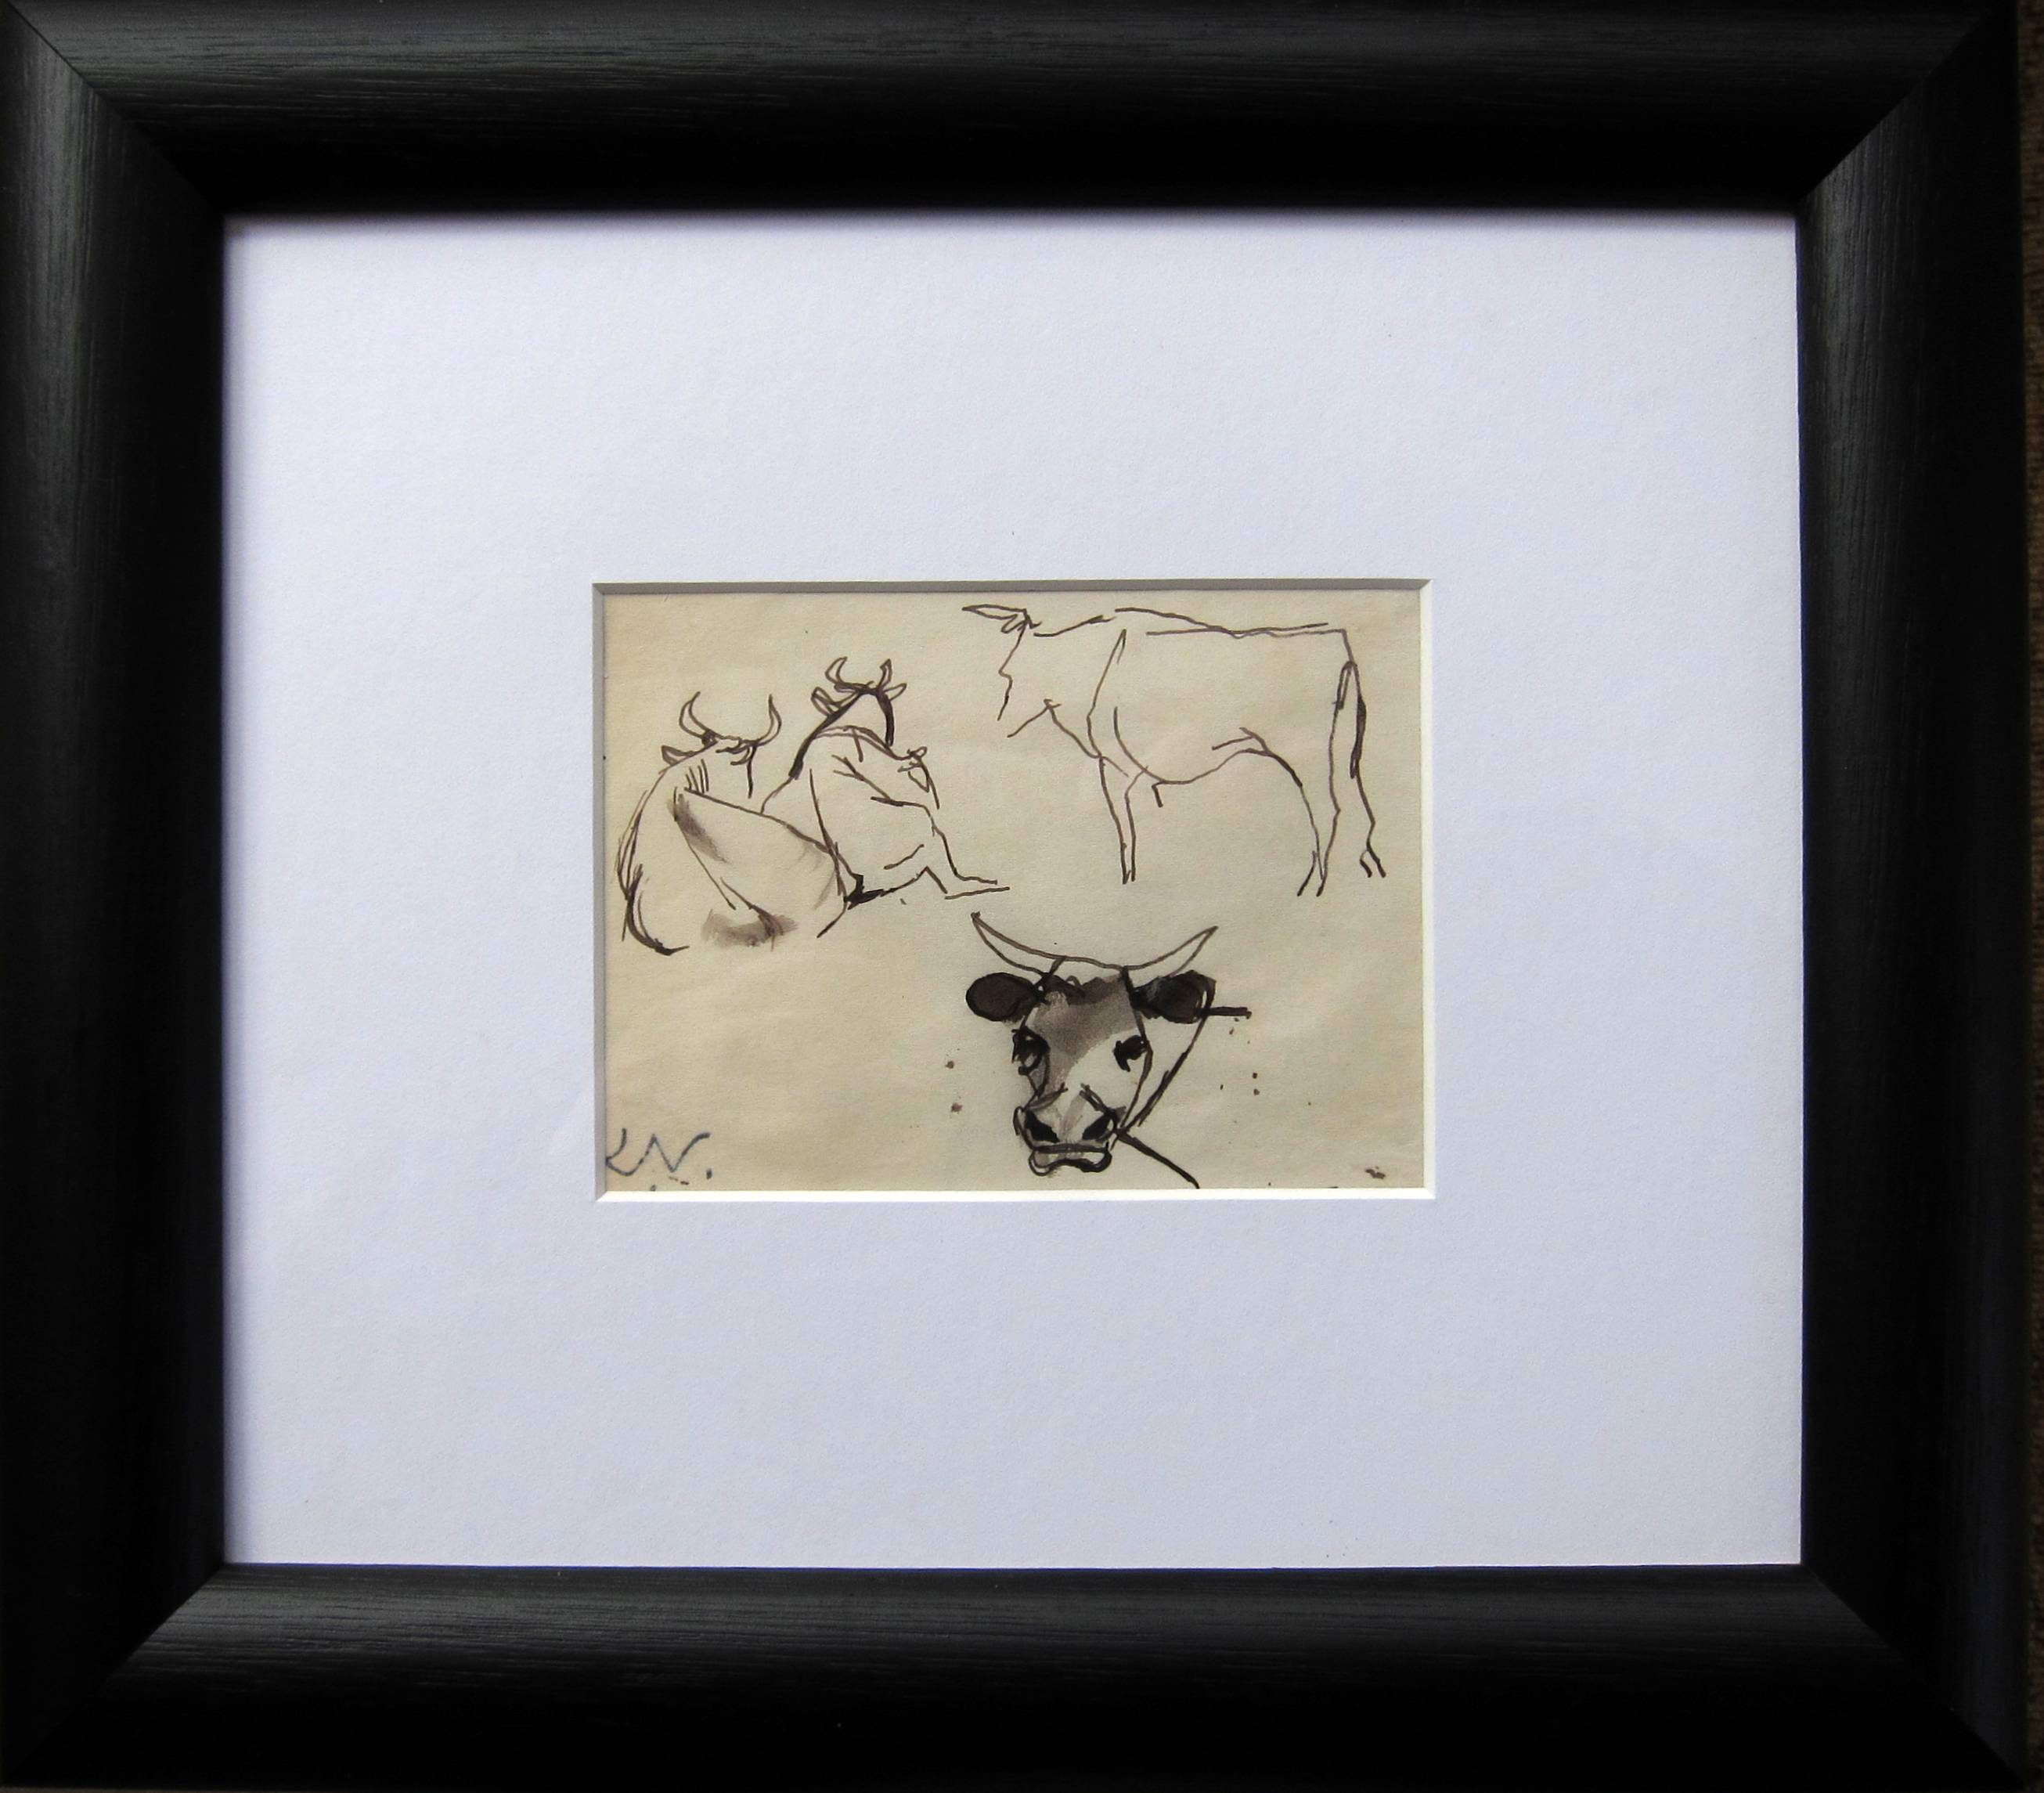 Lot 57 - KEITH VAUGHAN [1912-77]. Cows, 1943. ink drawing, studio stamp initials bottom left. 9 x 11 cm [